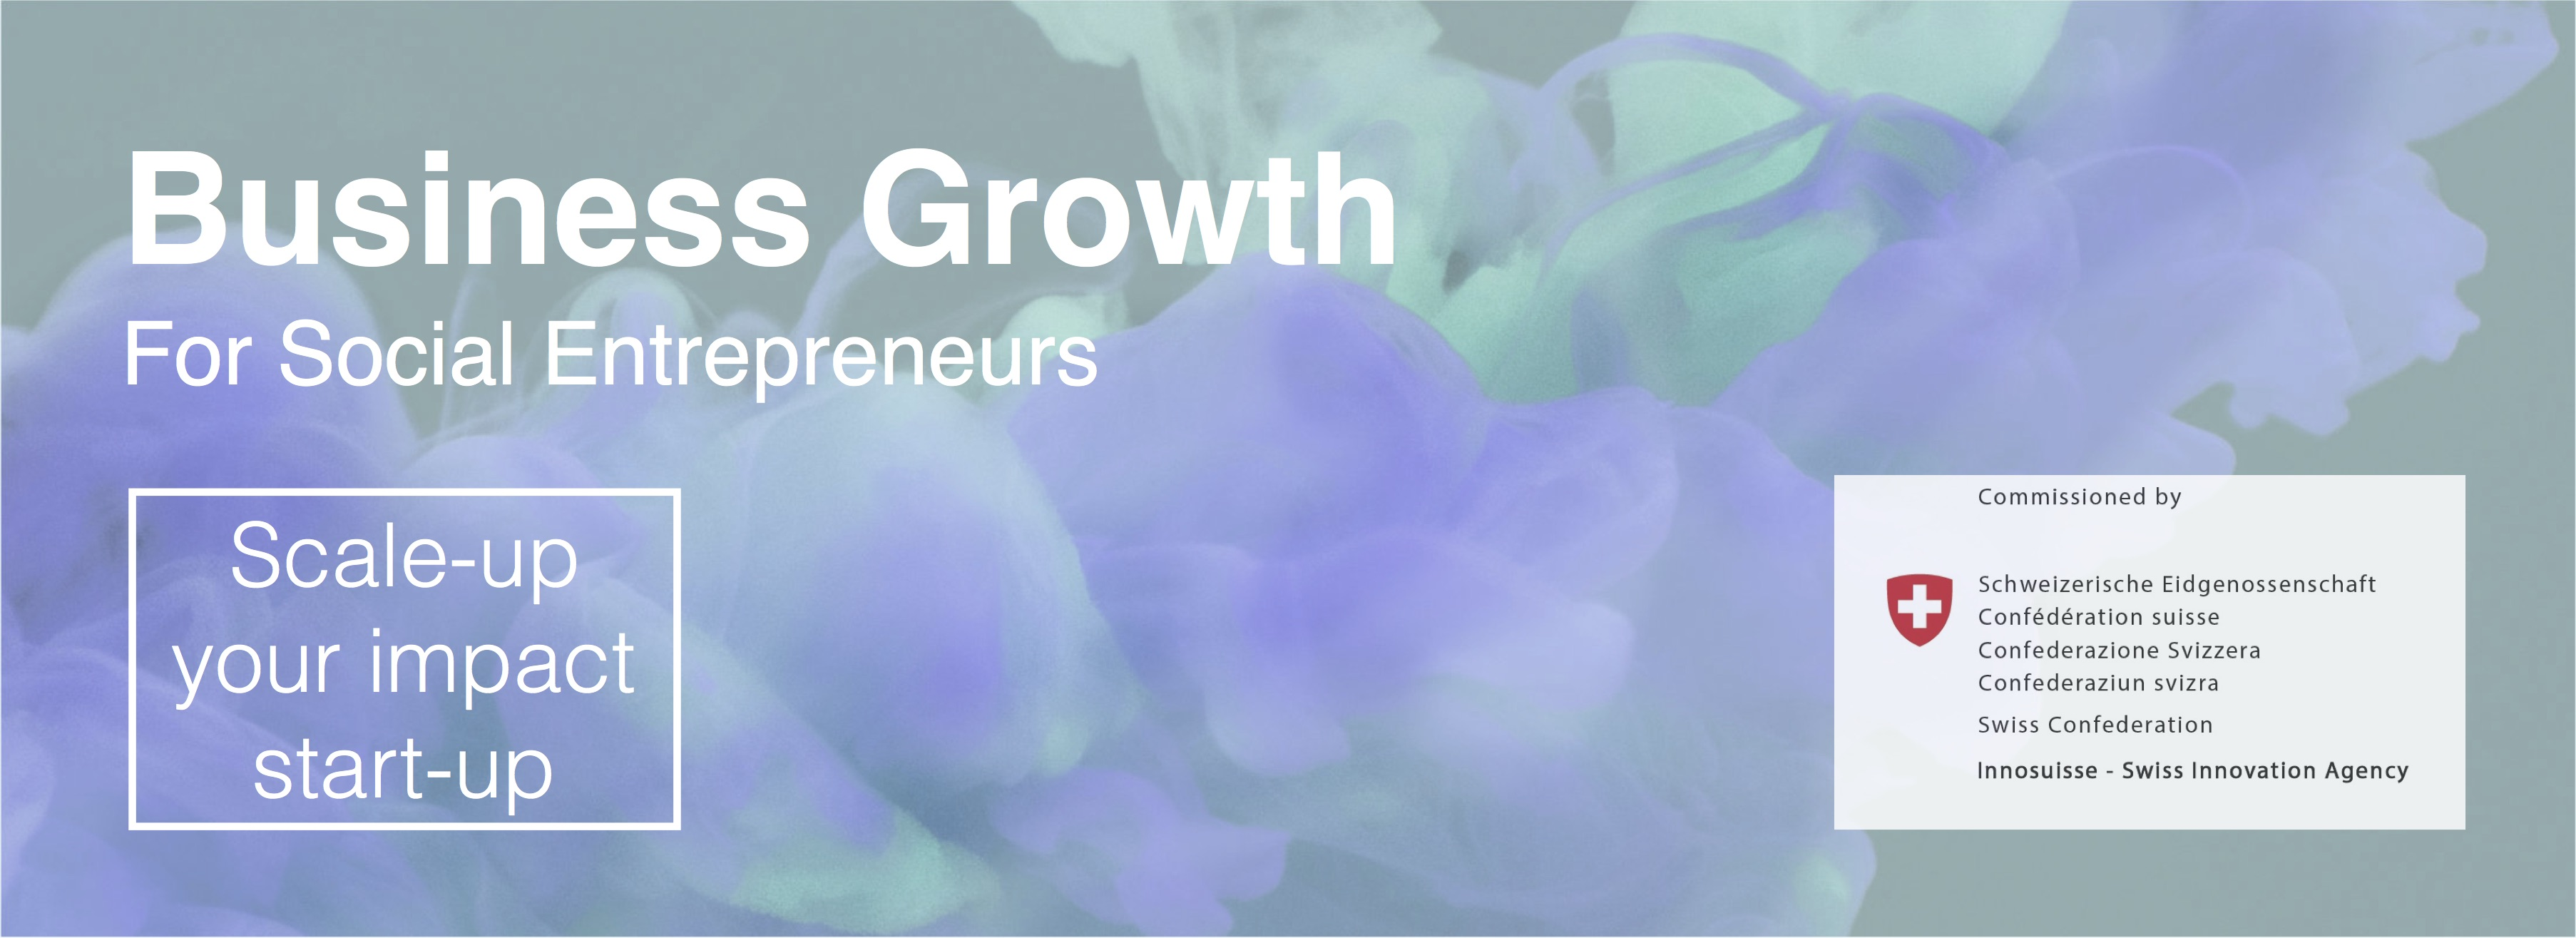 Innosuisse Startup Training - Business Growth